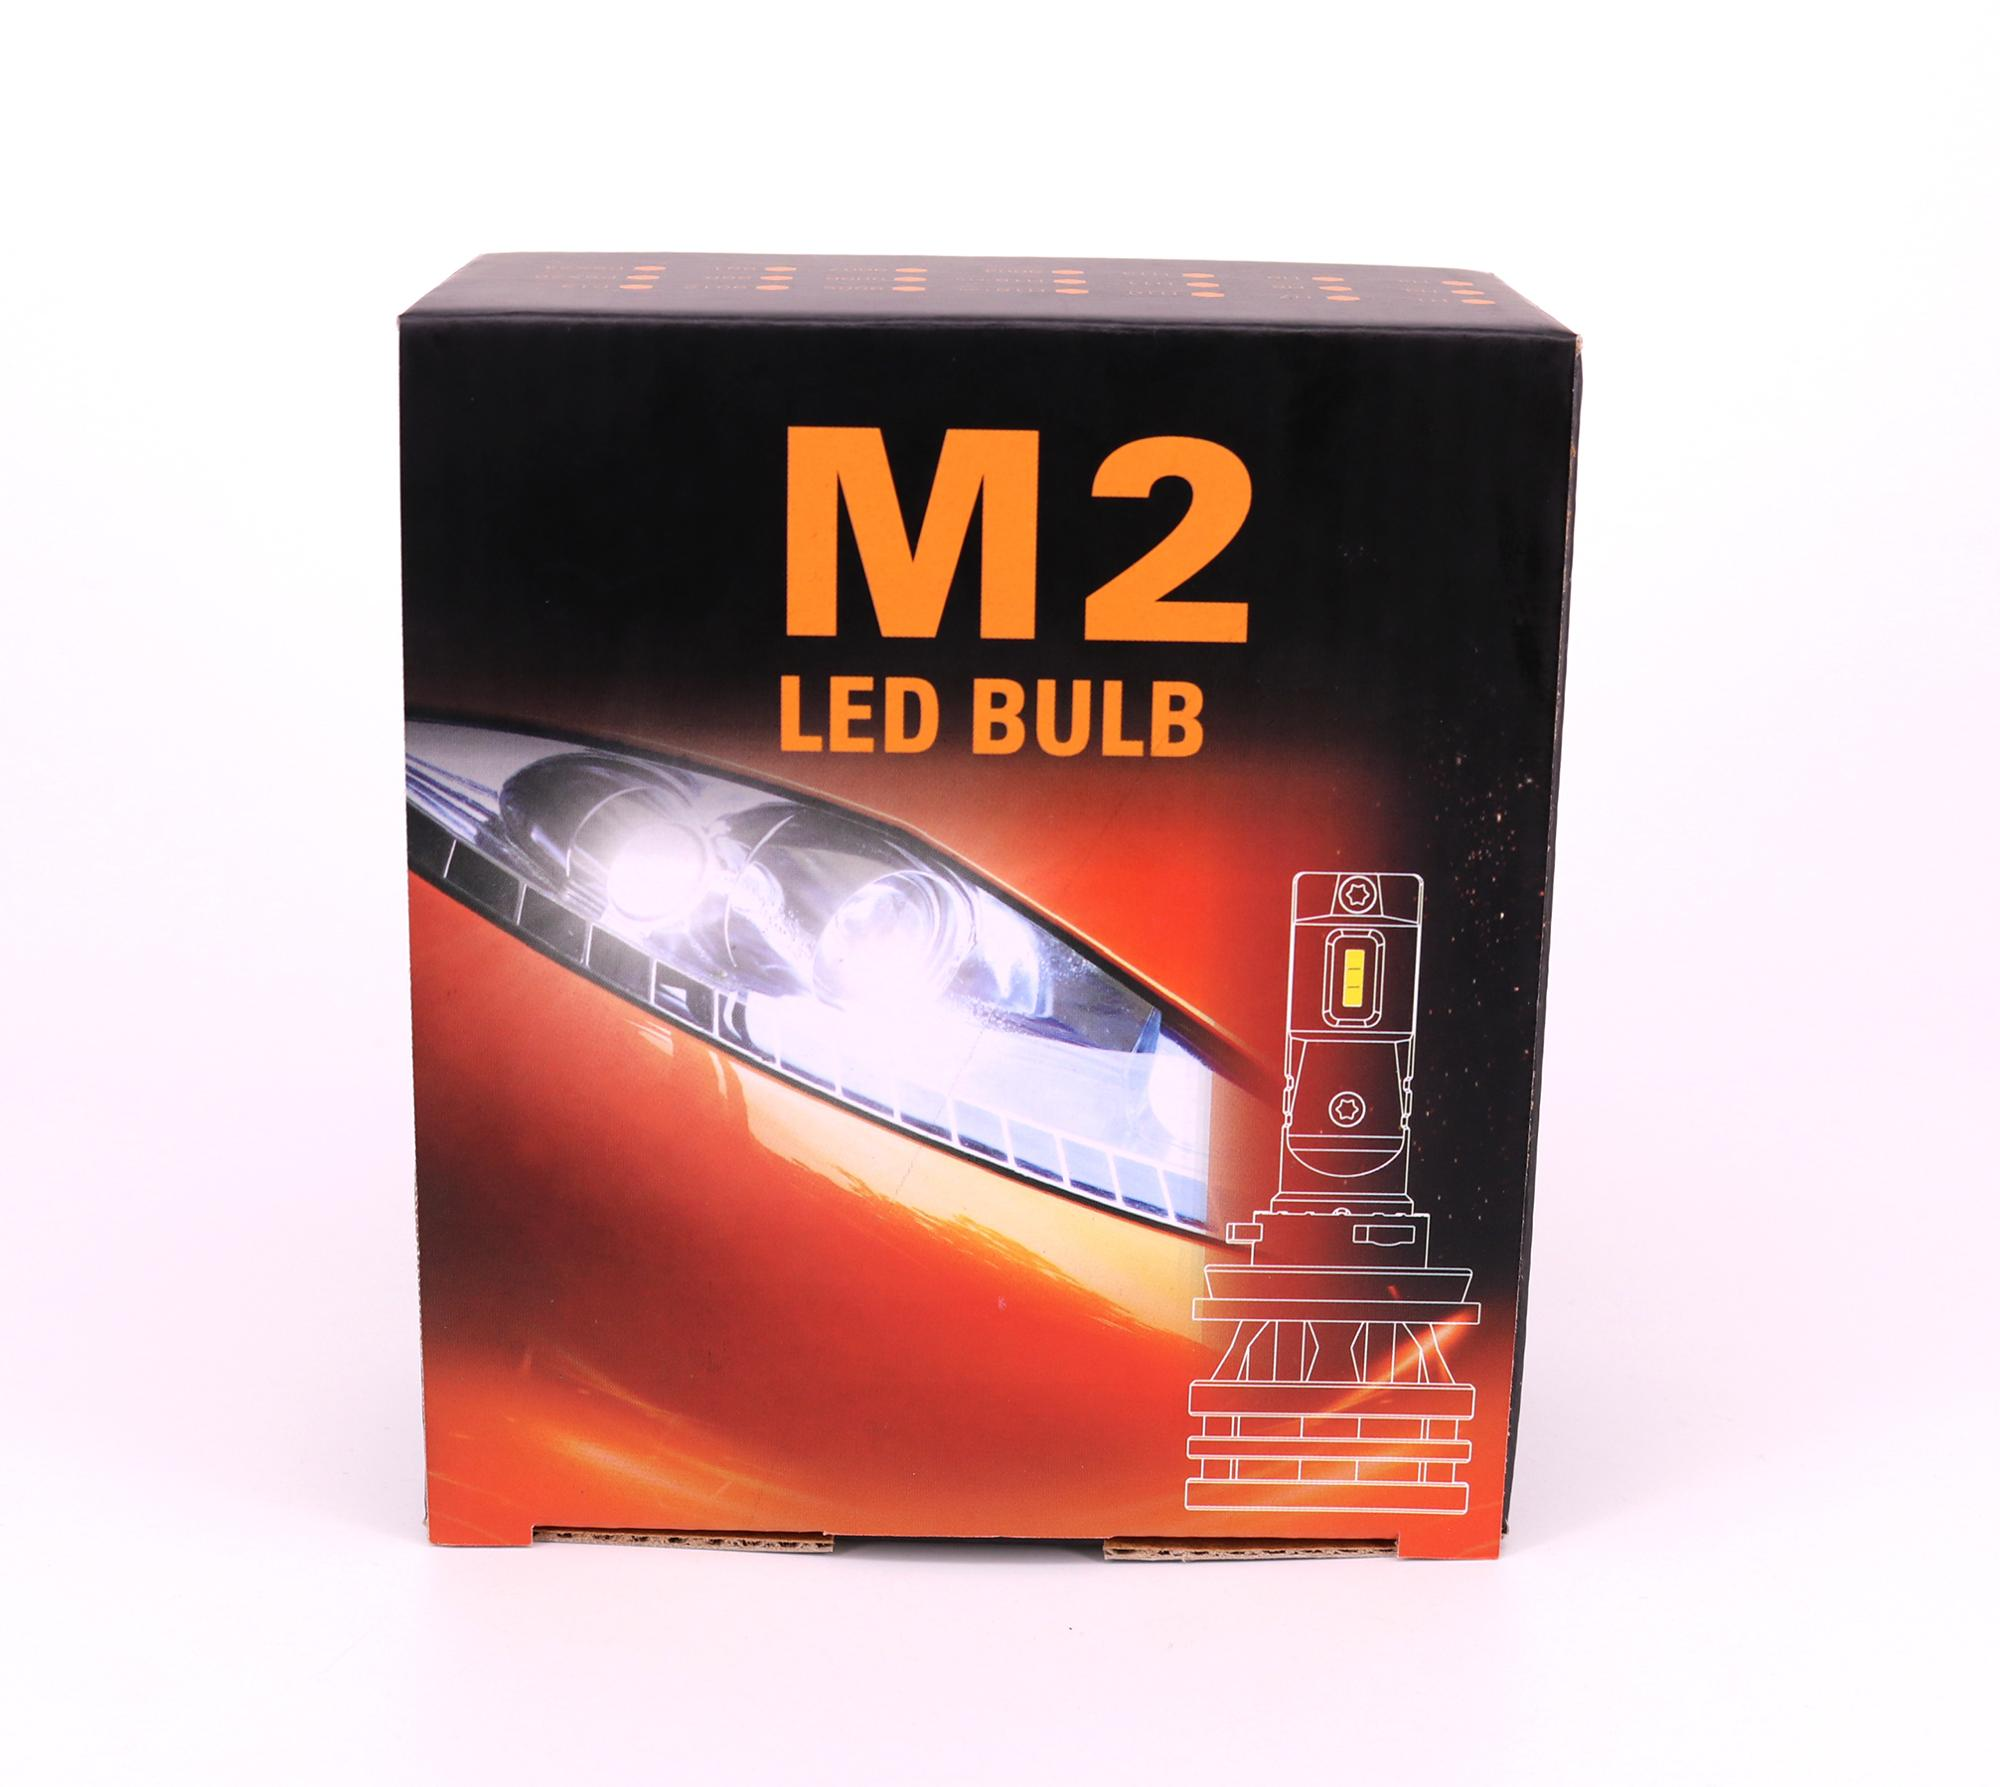 Flydee super white 10000 lumen led bulb high and low beam M2 9006 hb4 led conversion kit HIR2 H11 H7 car led headlight